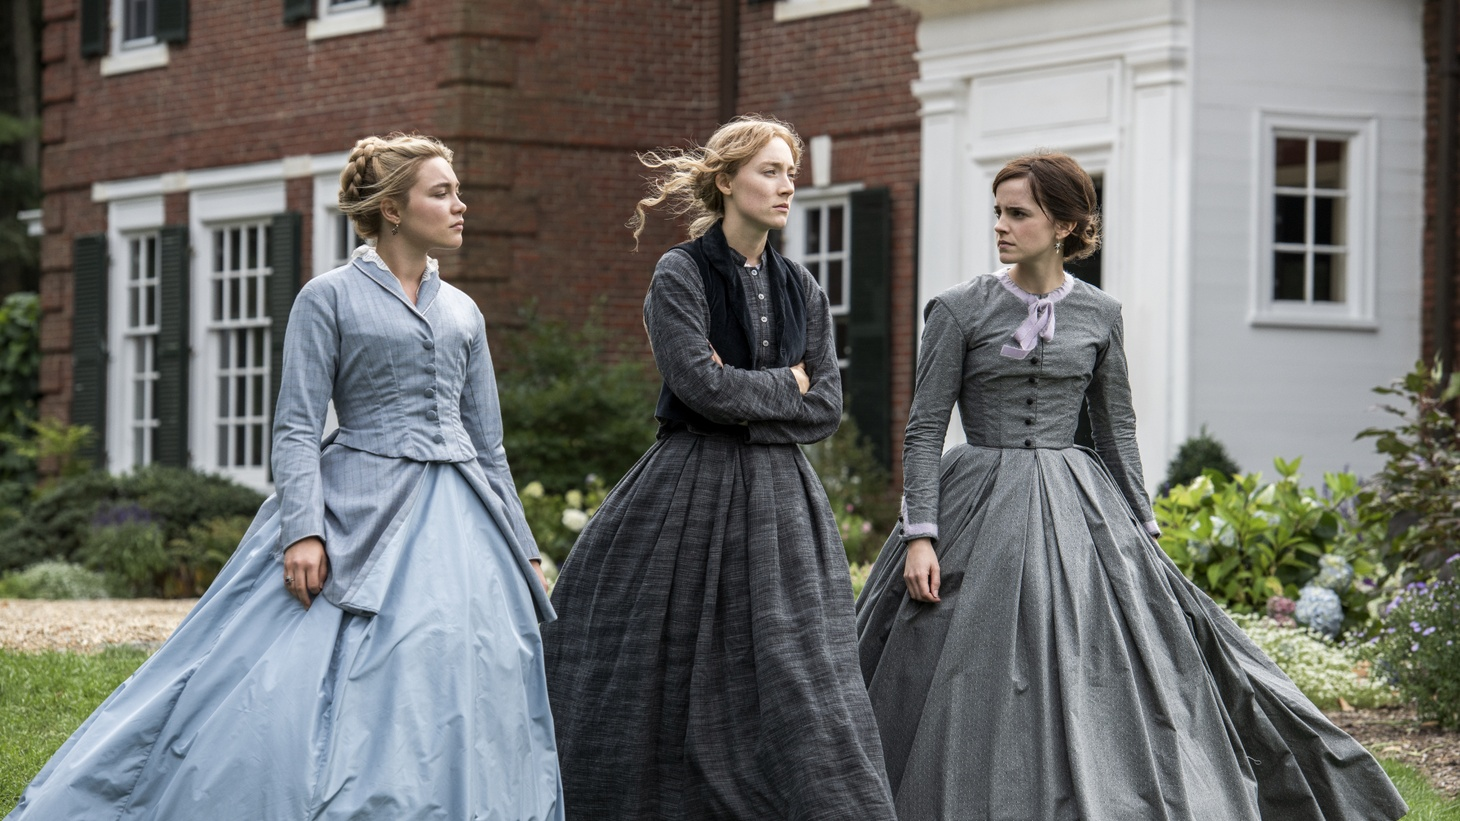 """Louisa May Alcott wrote """"Little Women"""" more than 150 years ago, and since then, the novel has been adapted into TV shows, a musical, a play, and seven movies. The most recent film adaptation (the 7th one) comes from director Greta Gerwig. """"Part of what I was doing as a writer and director was bringing out these things that just seemed like gems lying around that nobody picked up,"""" Gerwig says."""